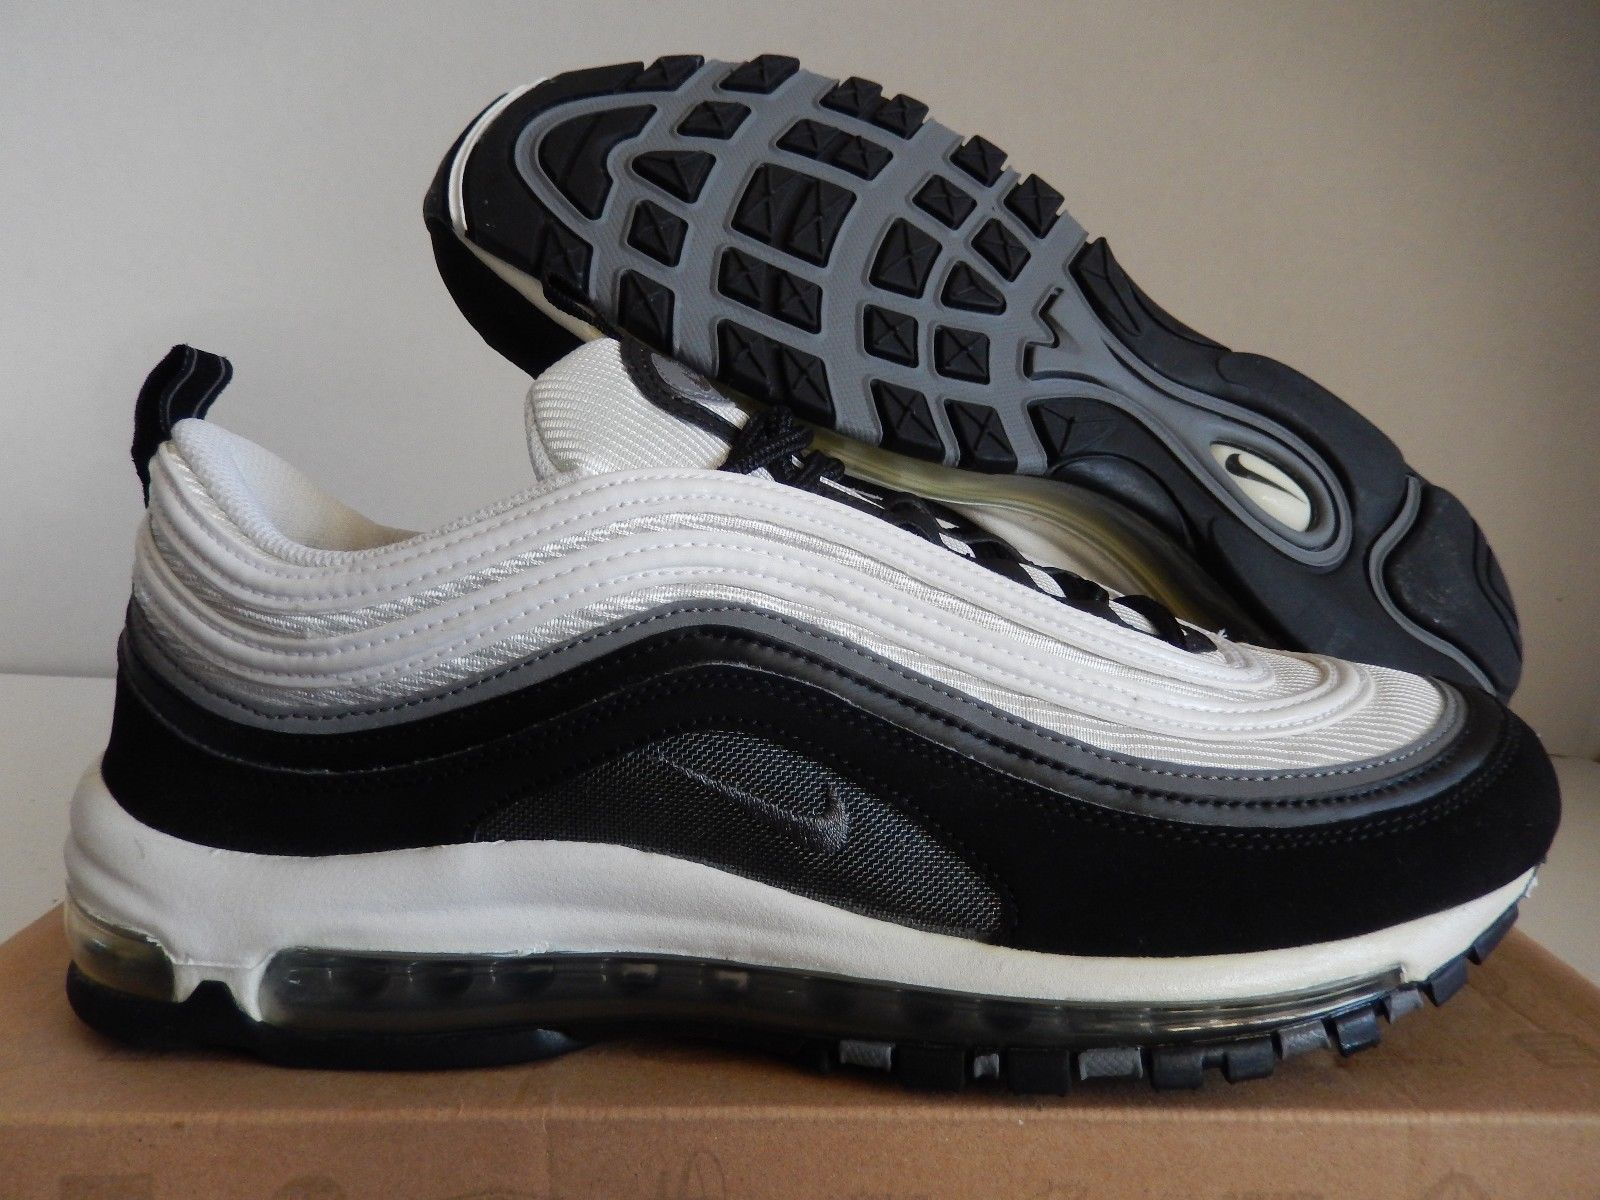 best cheap e3e9d c4189 NIKE AIR MAX 97 BLACK-COOL GREY-WHITE SZ 11 RARE!!!  312641-005